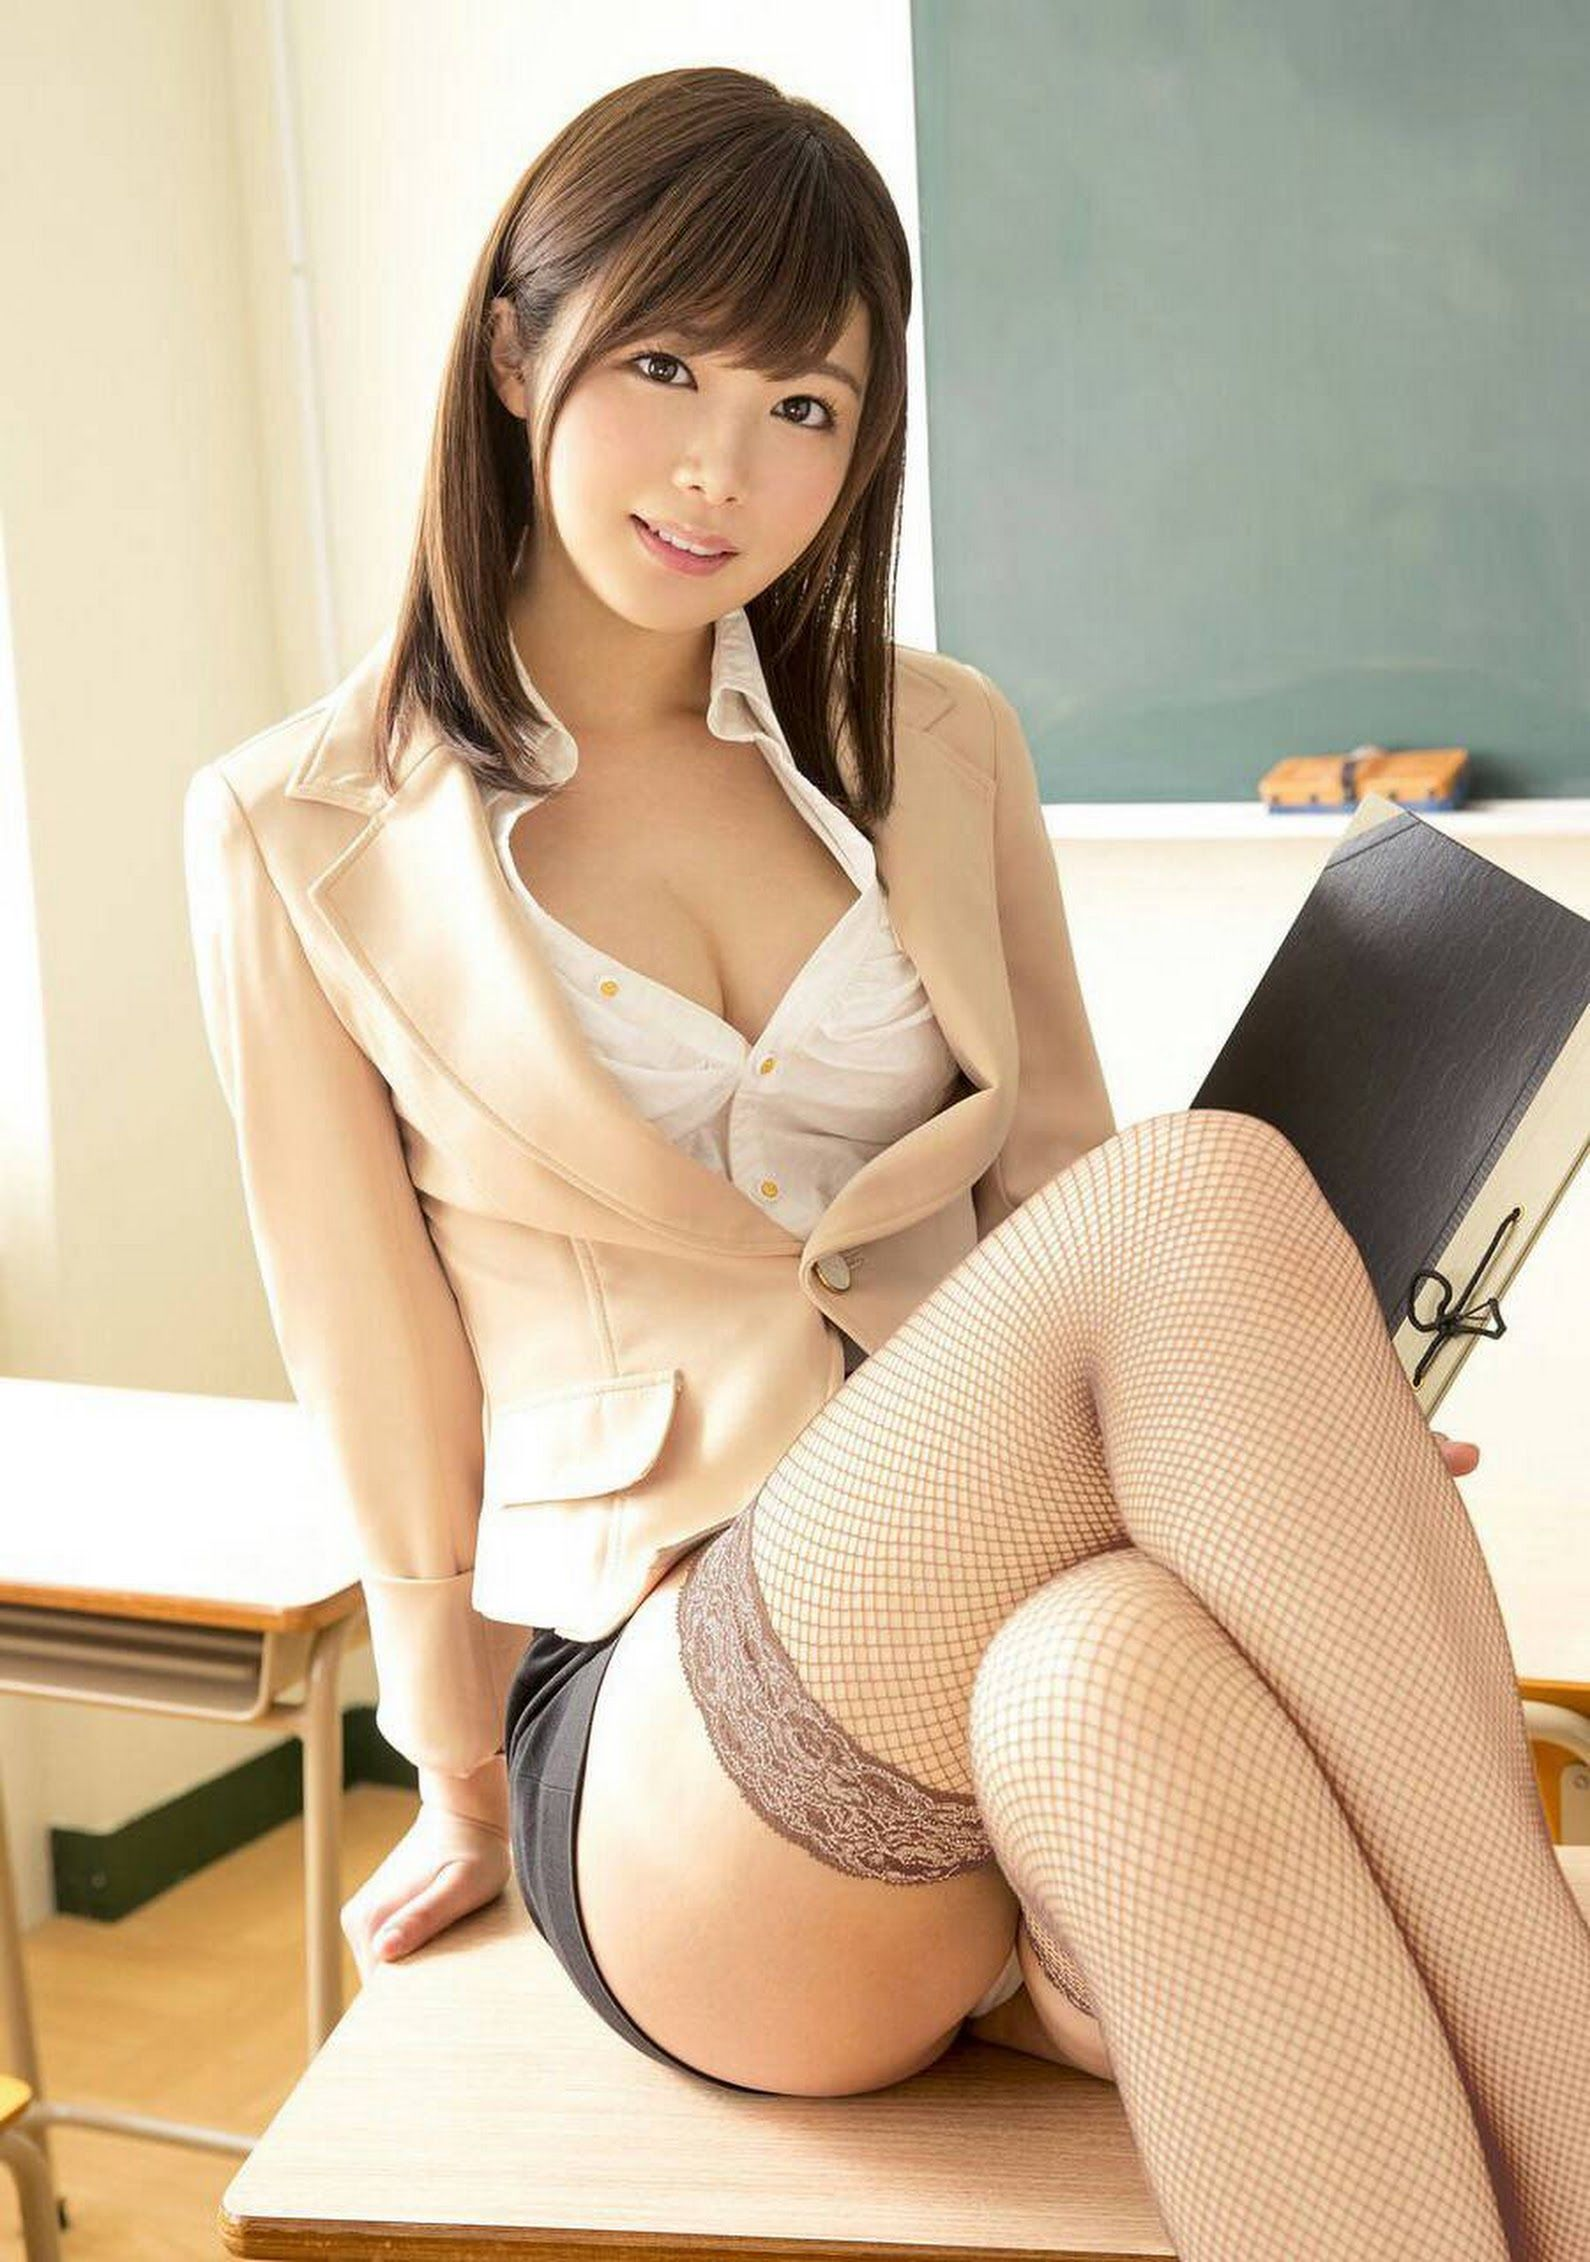 I like the Japanese girl that mood, body line and breast